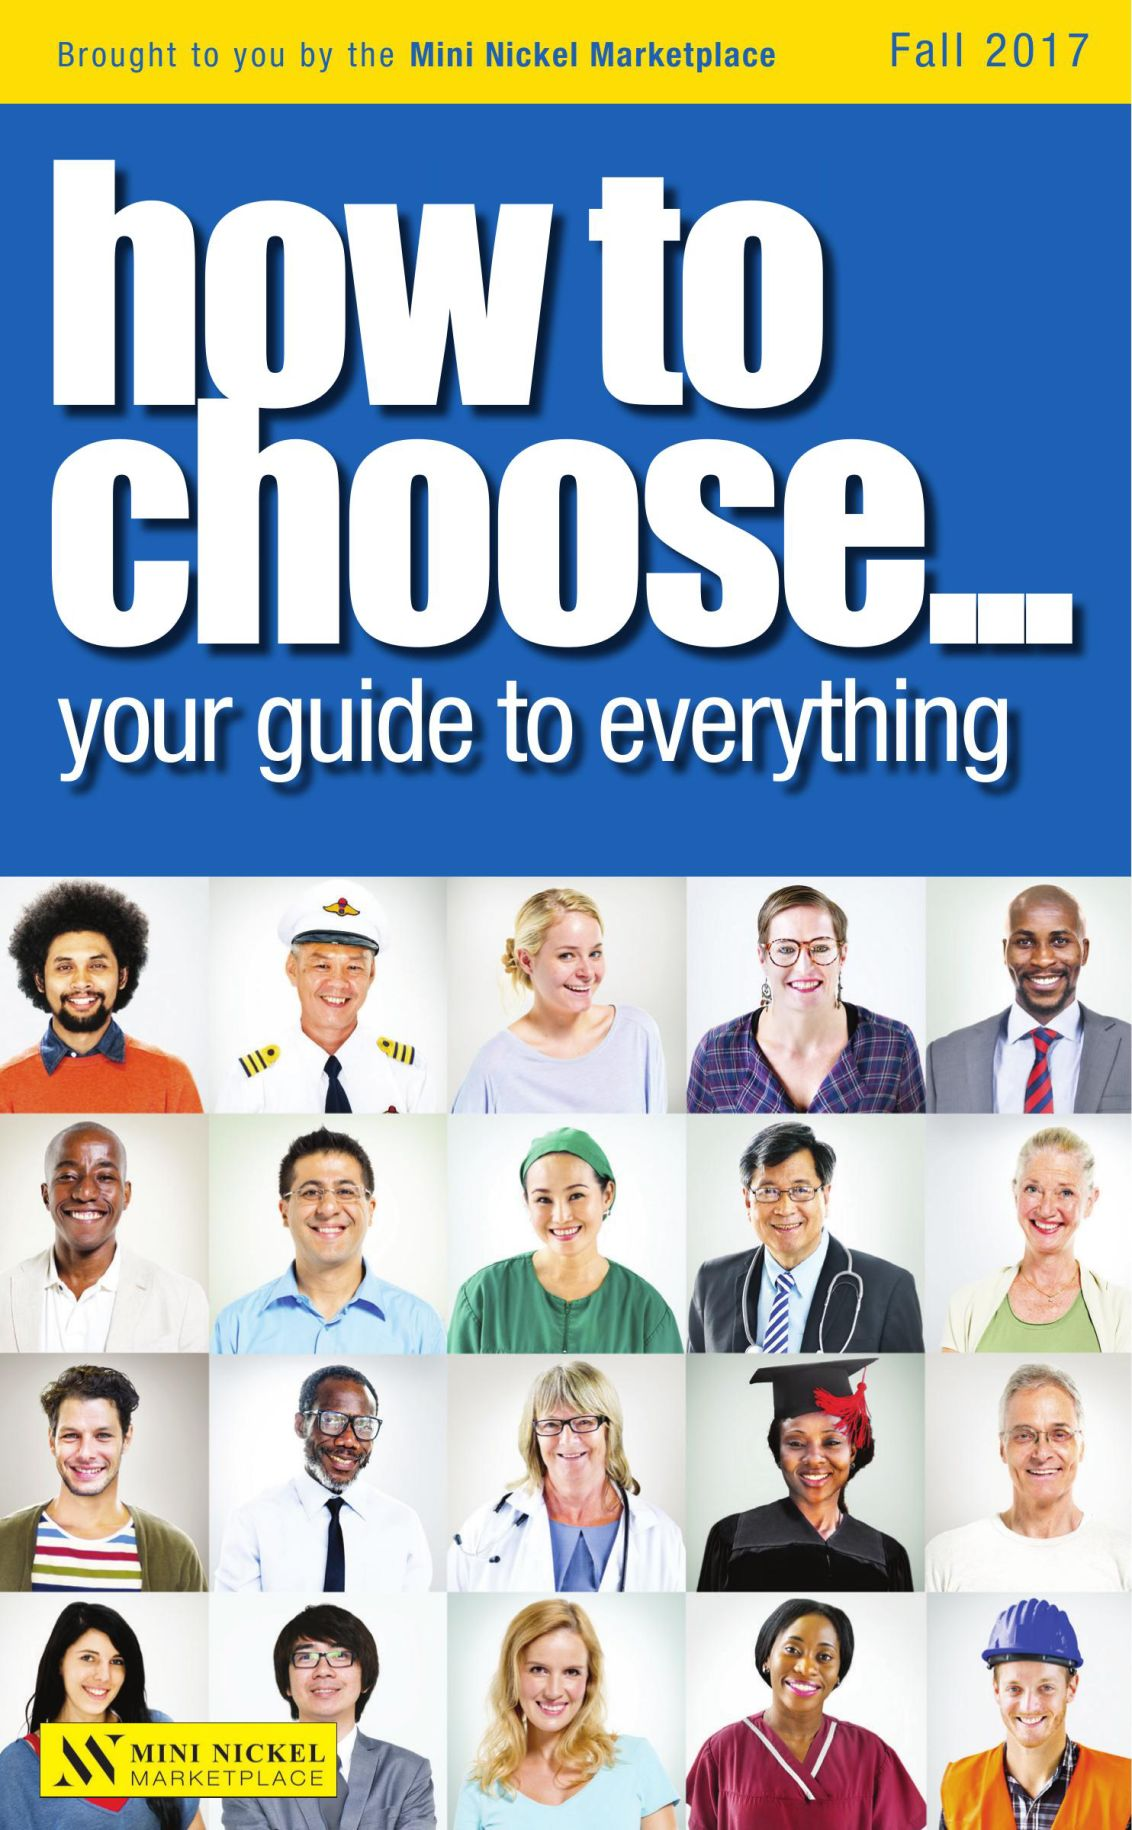 How to Choose Guide - Fall 2017